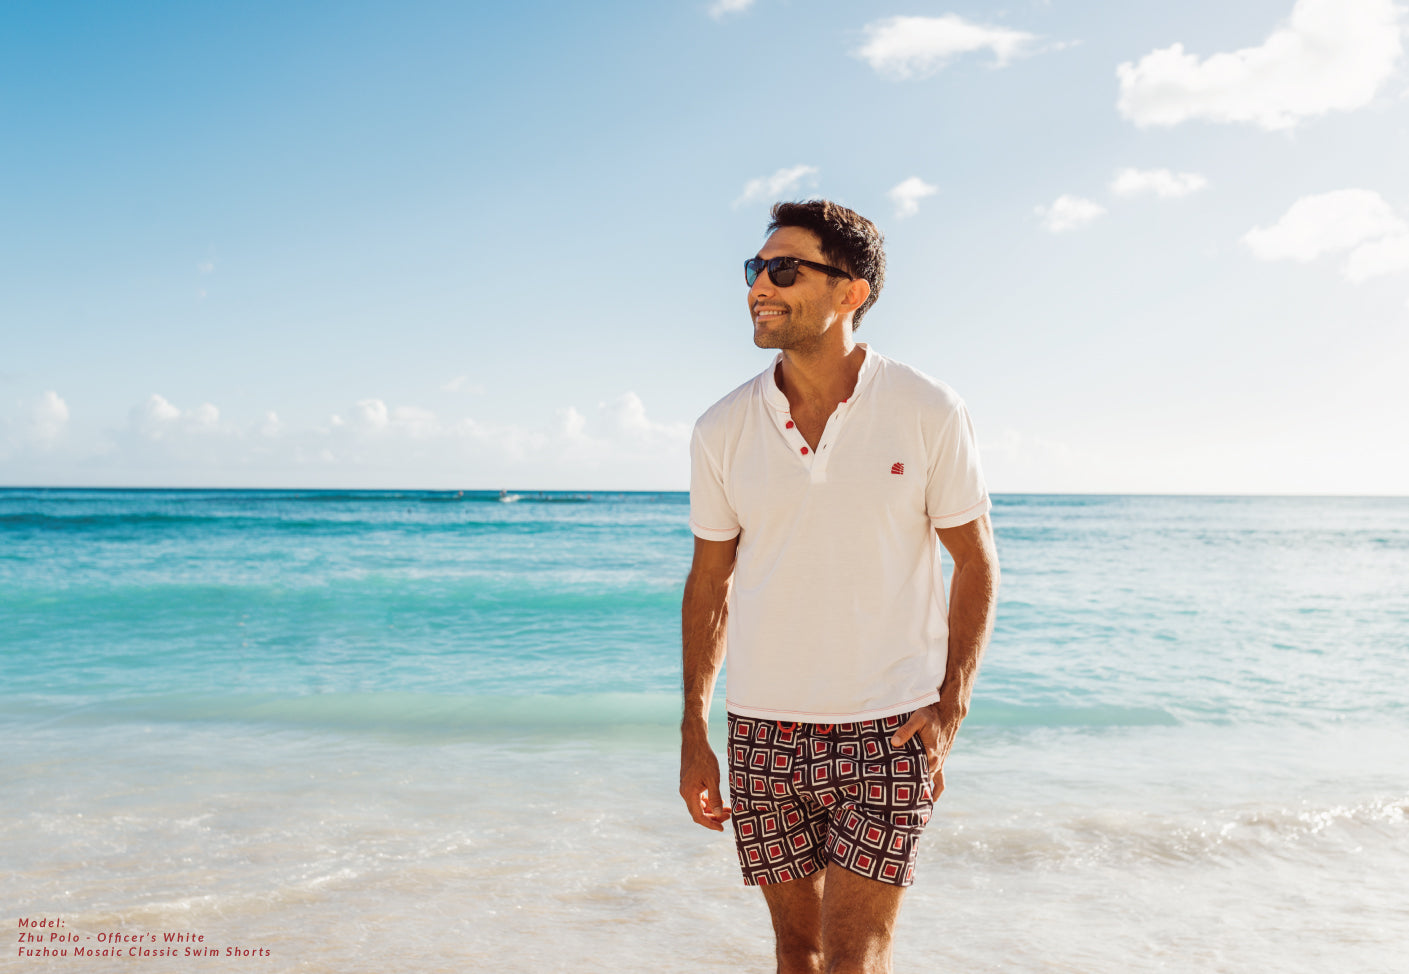 Bamboo White Polo in Swim Short on the beach